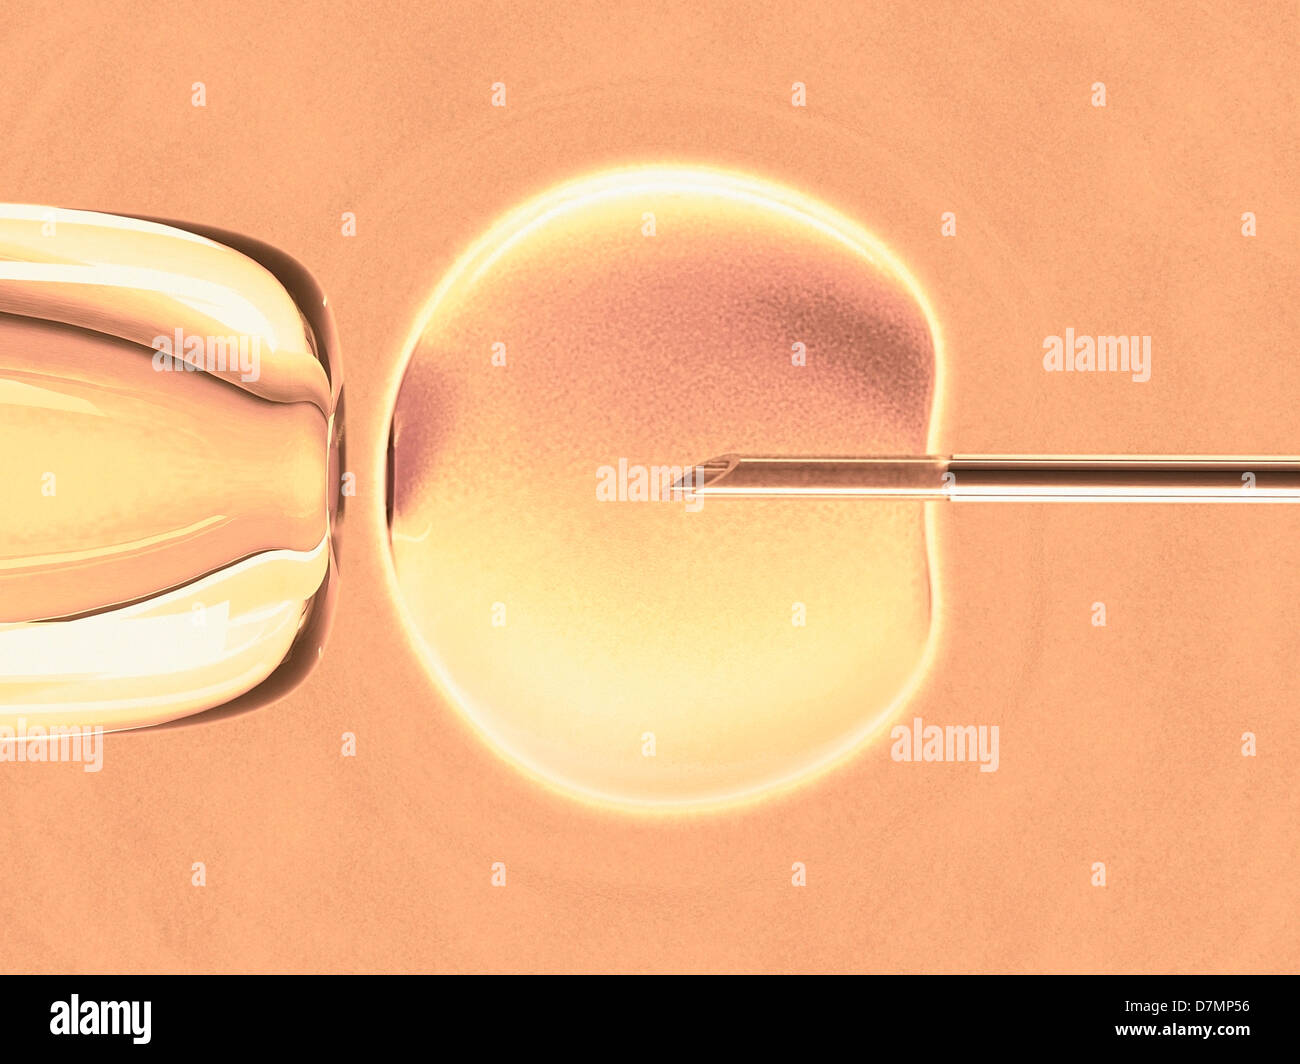 In vitro fertilisation, artwork - Stock Image